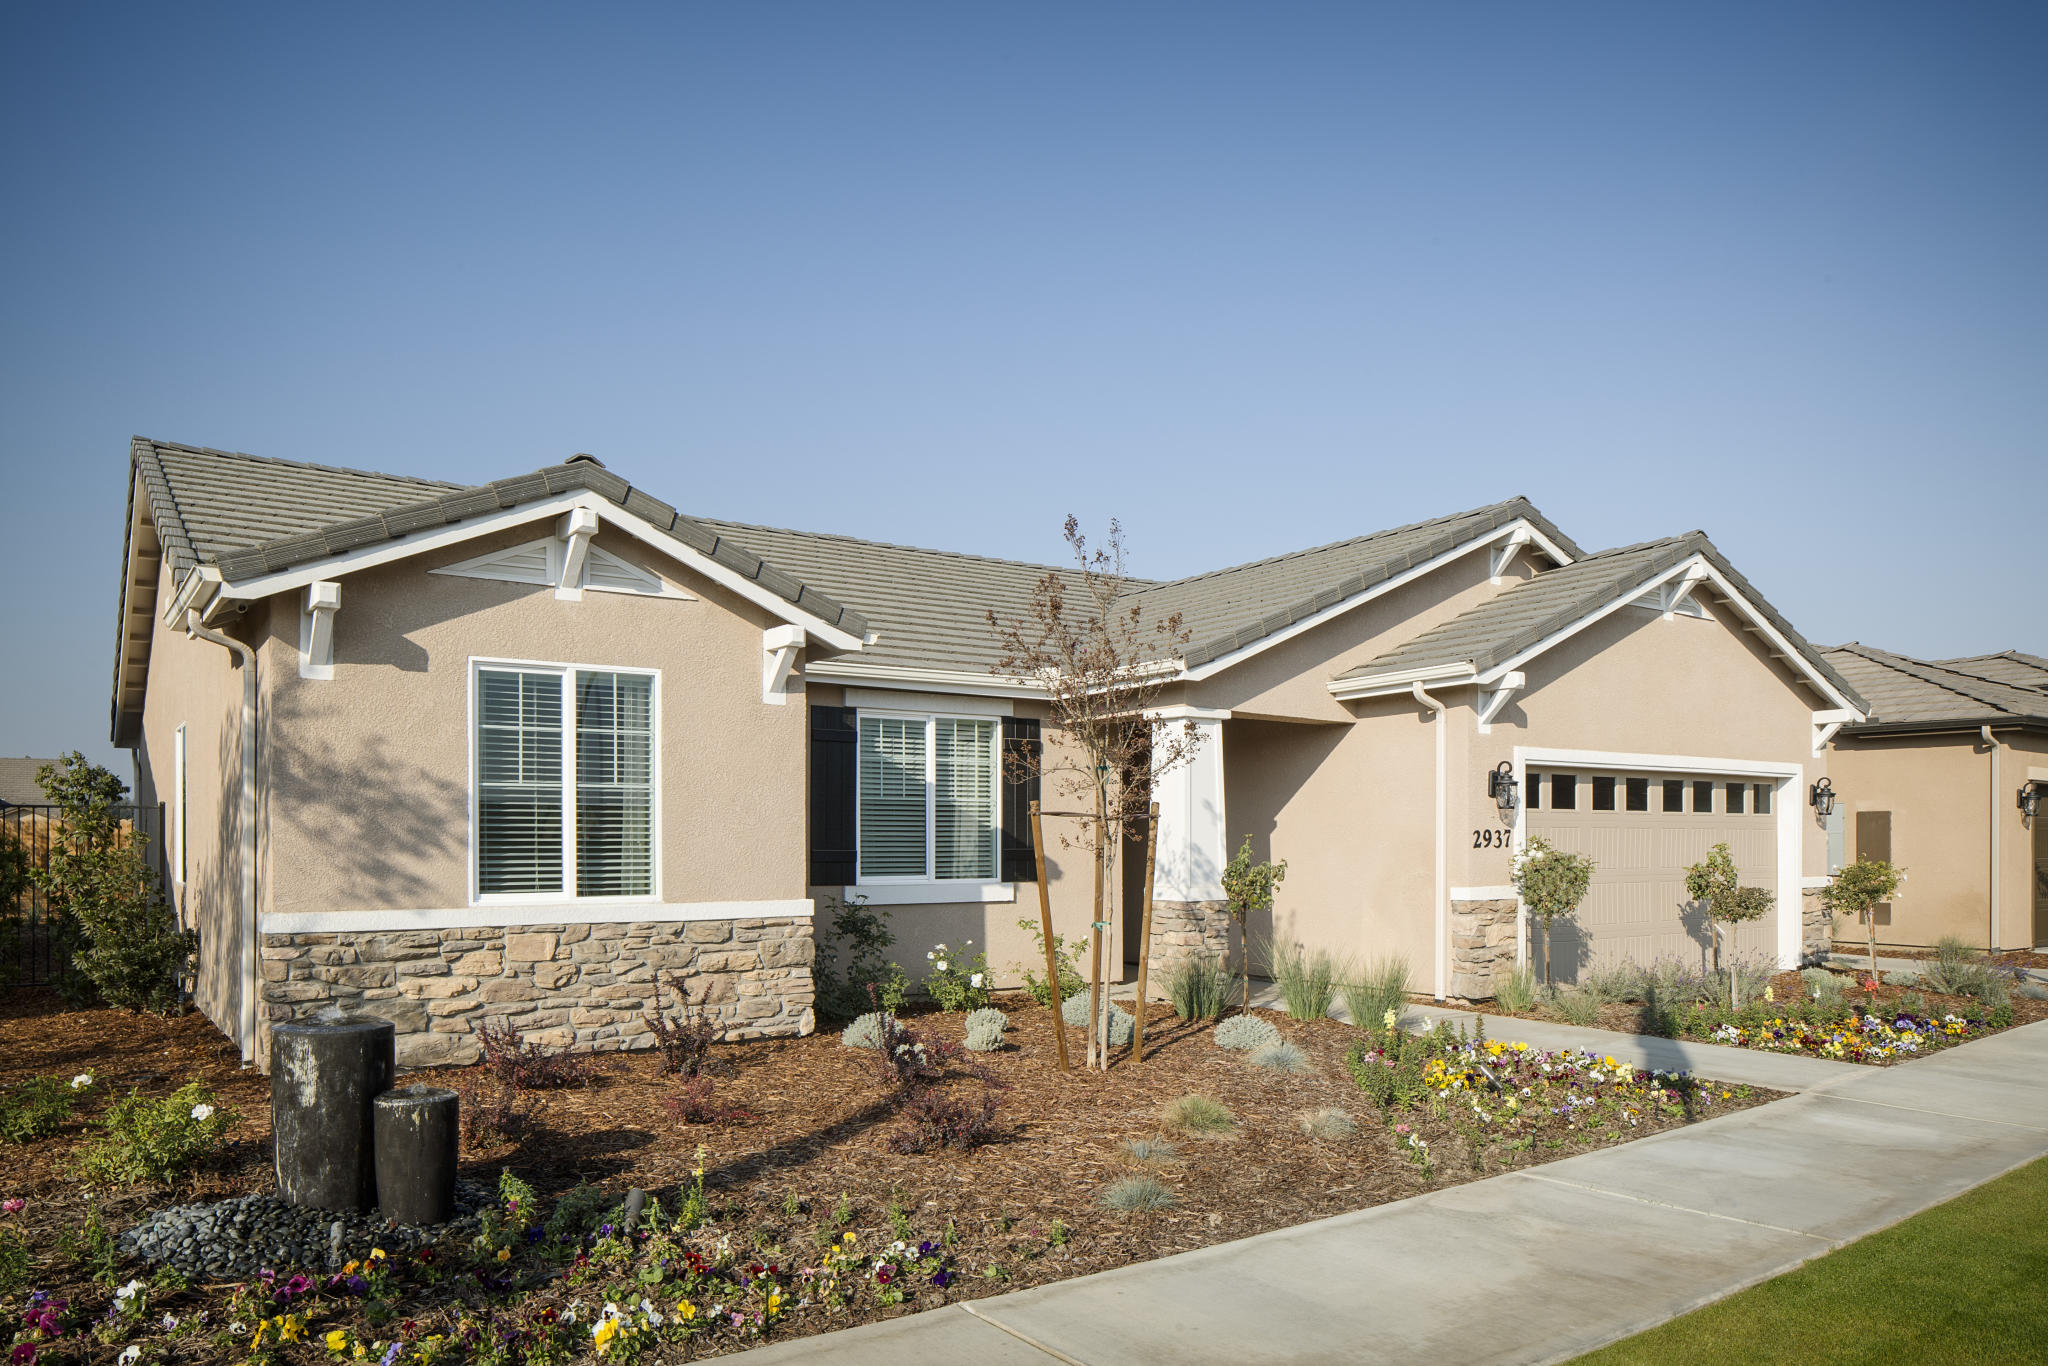 Chelsea West By San Joaquin Valley Homes New Homes For Sale